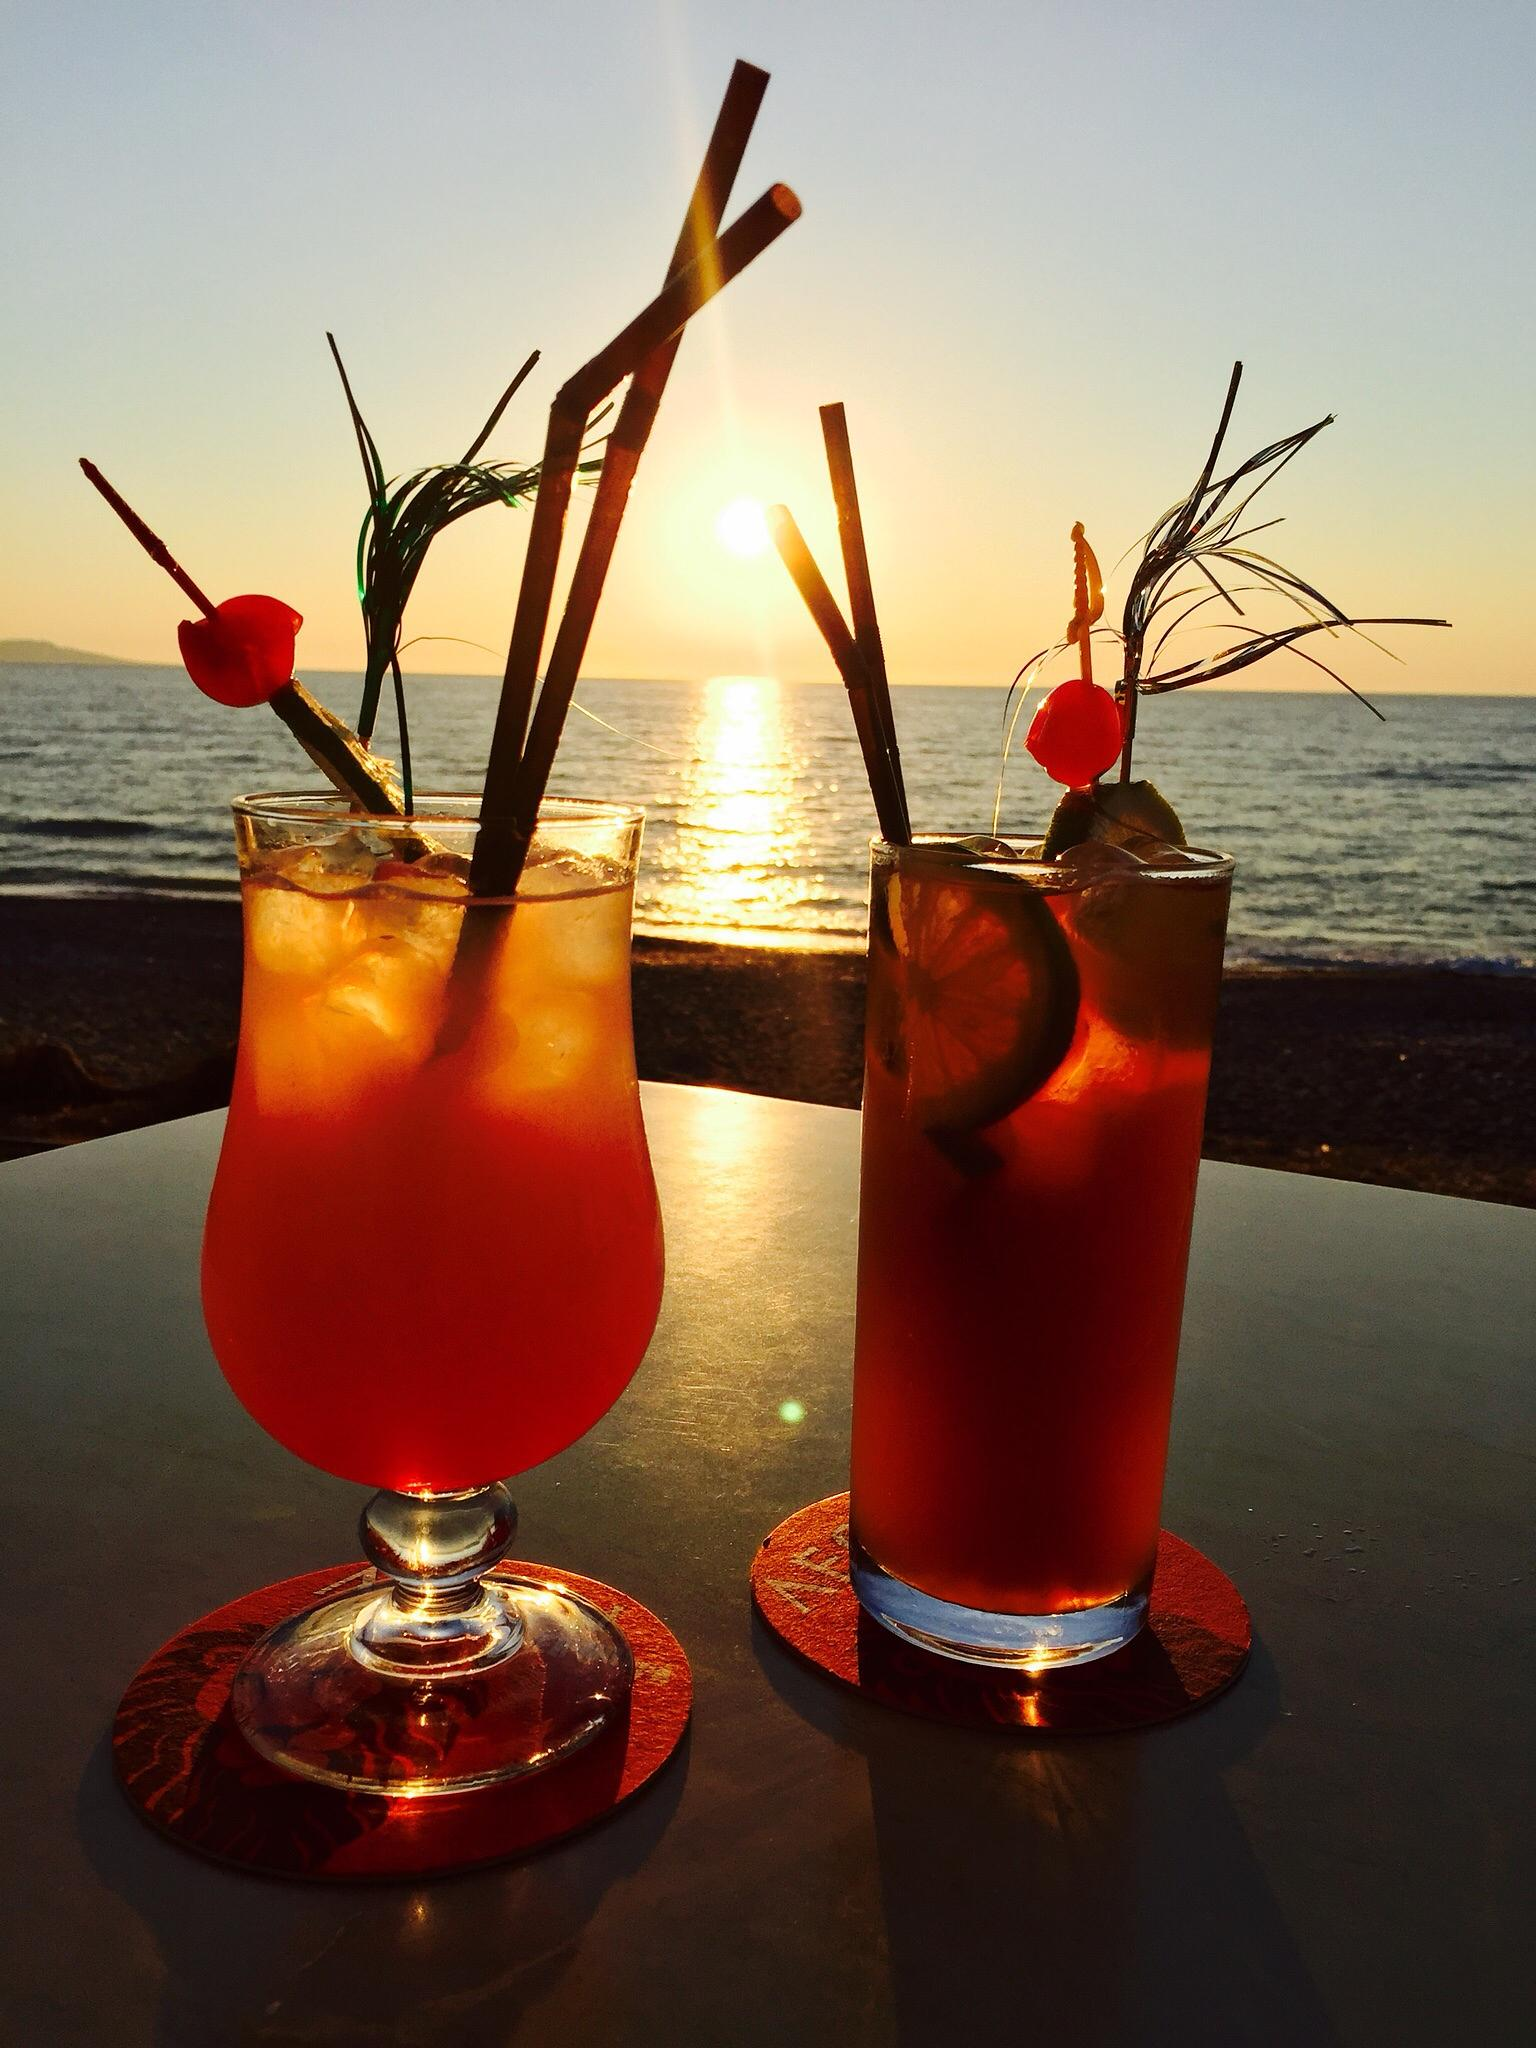 Cocktails at Sunset by Gayle